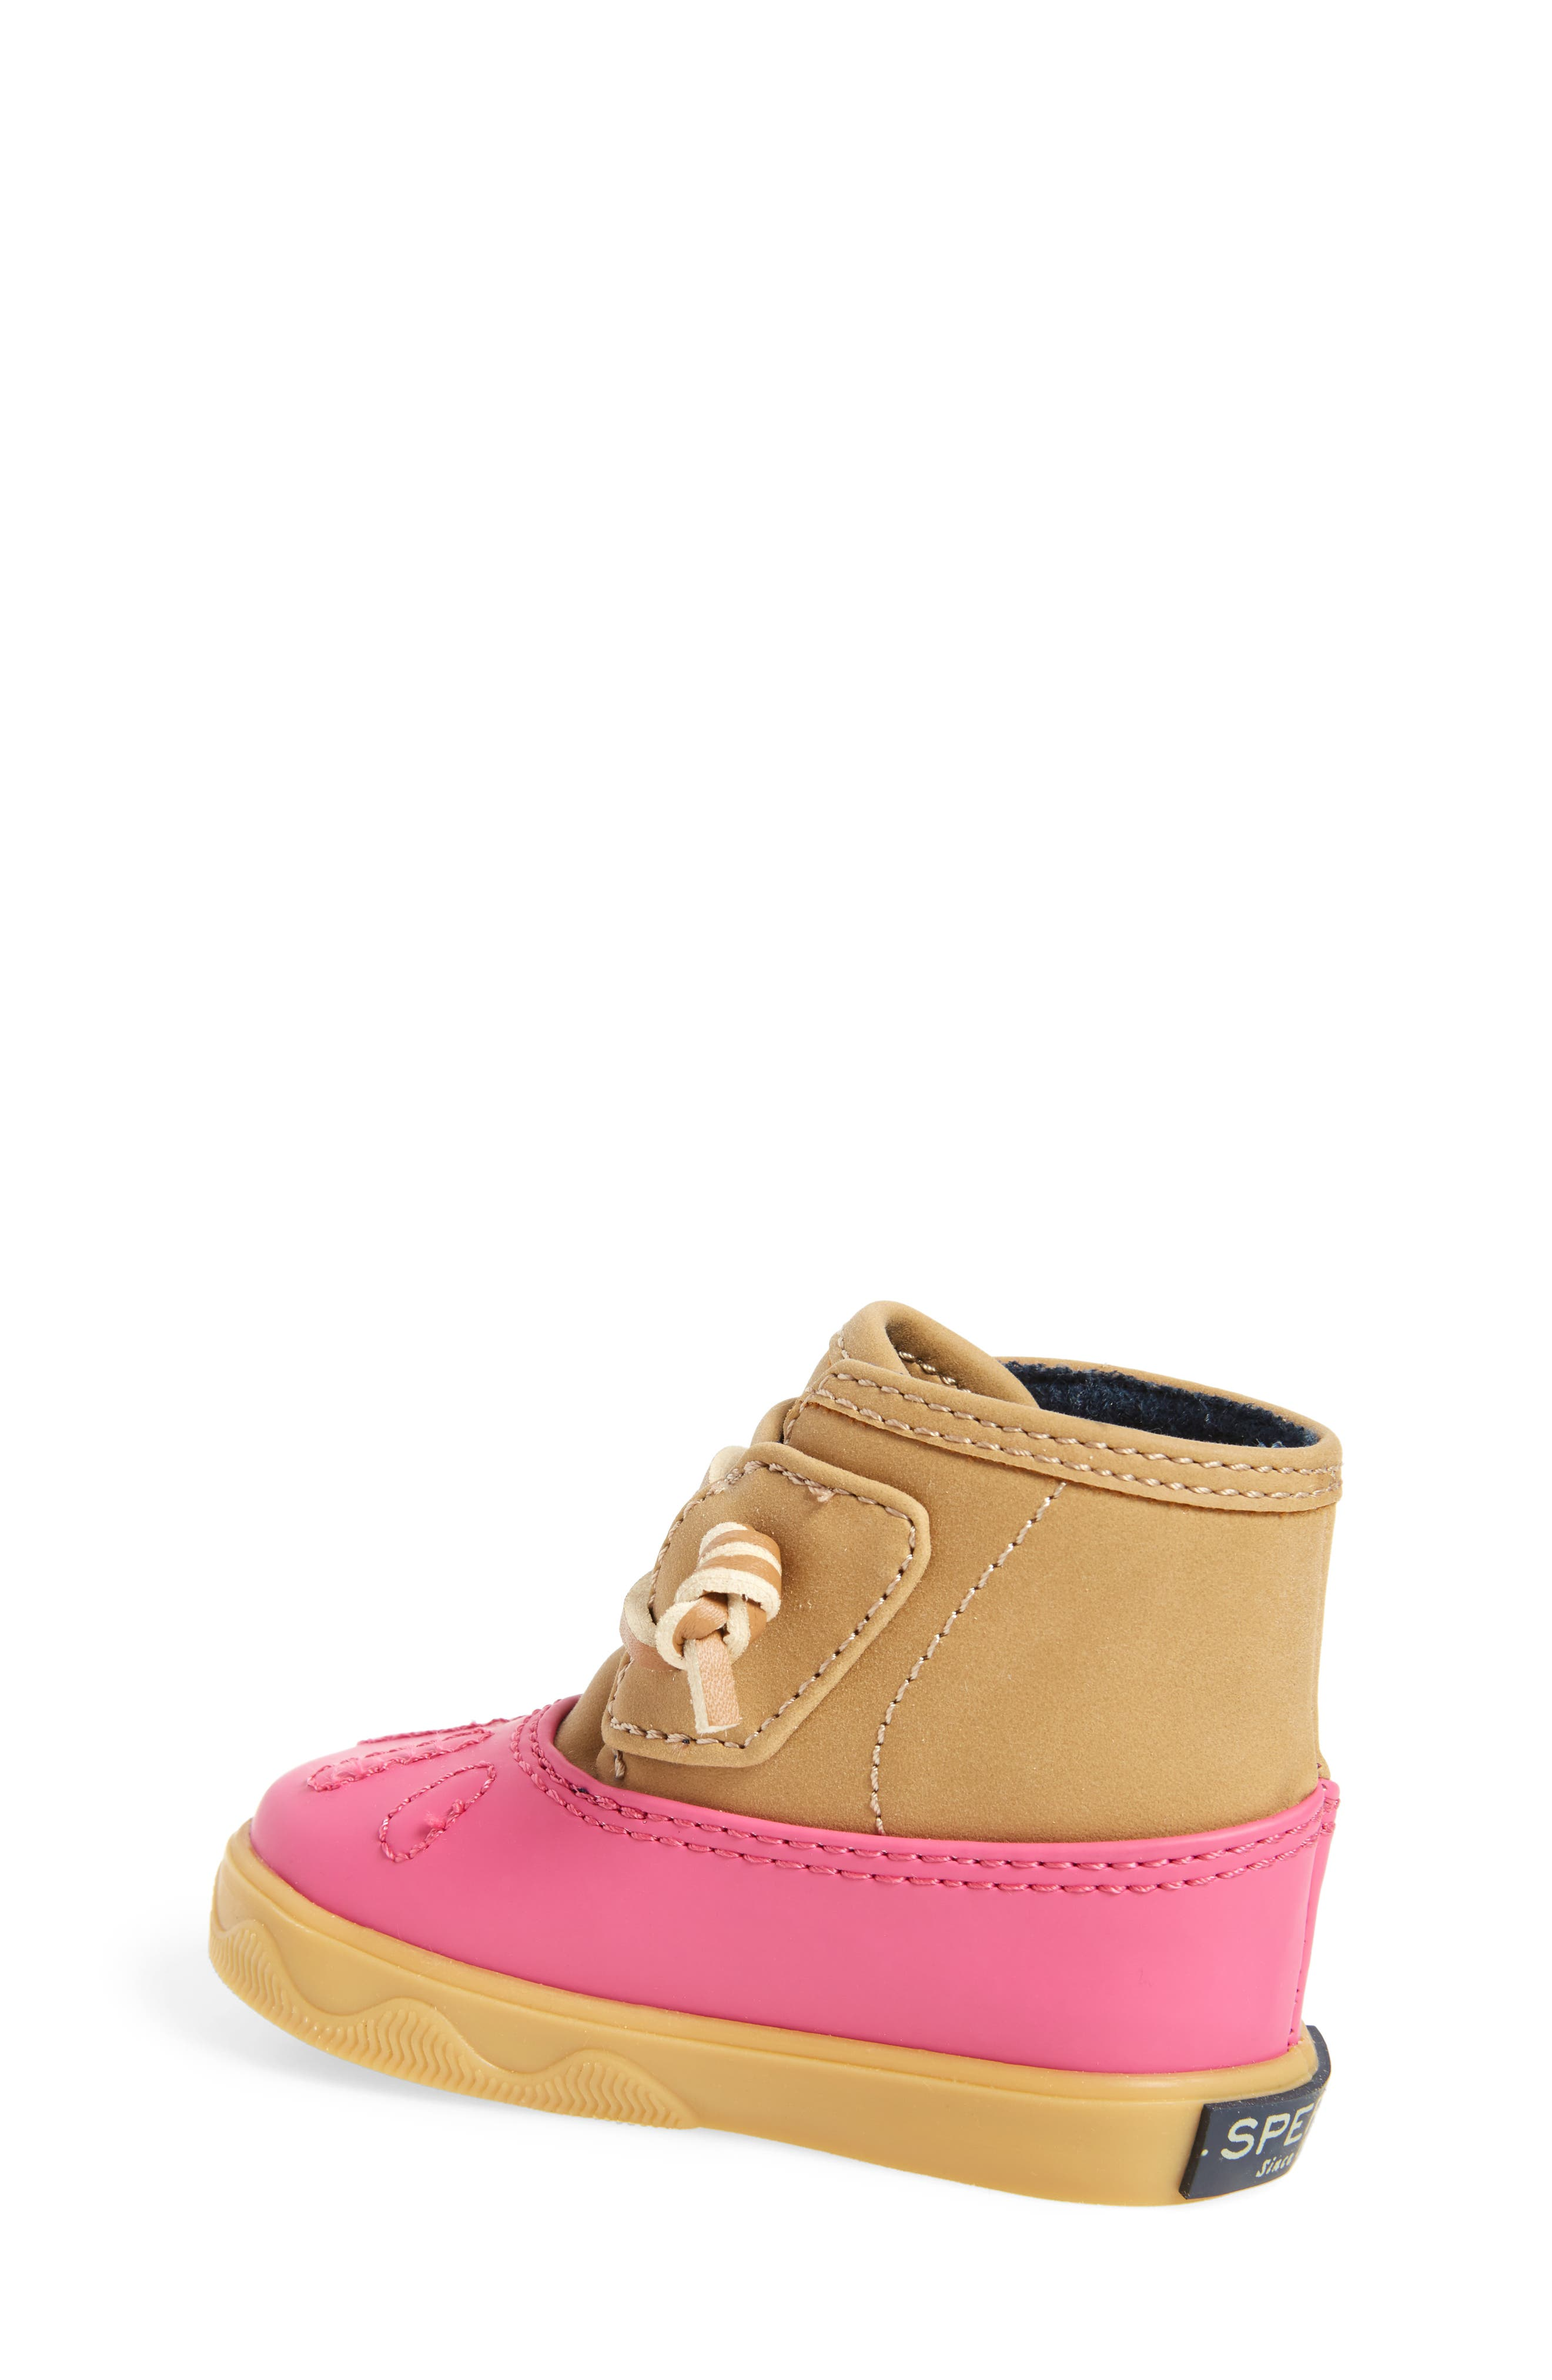 Sperry Icestorm Crib Duck Bootie,                             Alternate thumbnail 2, color,                             650